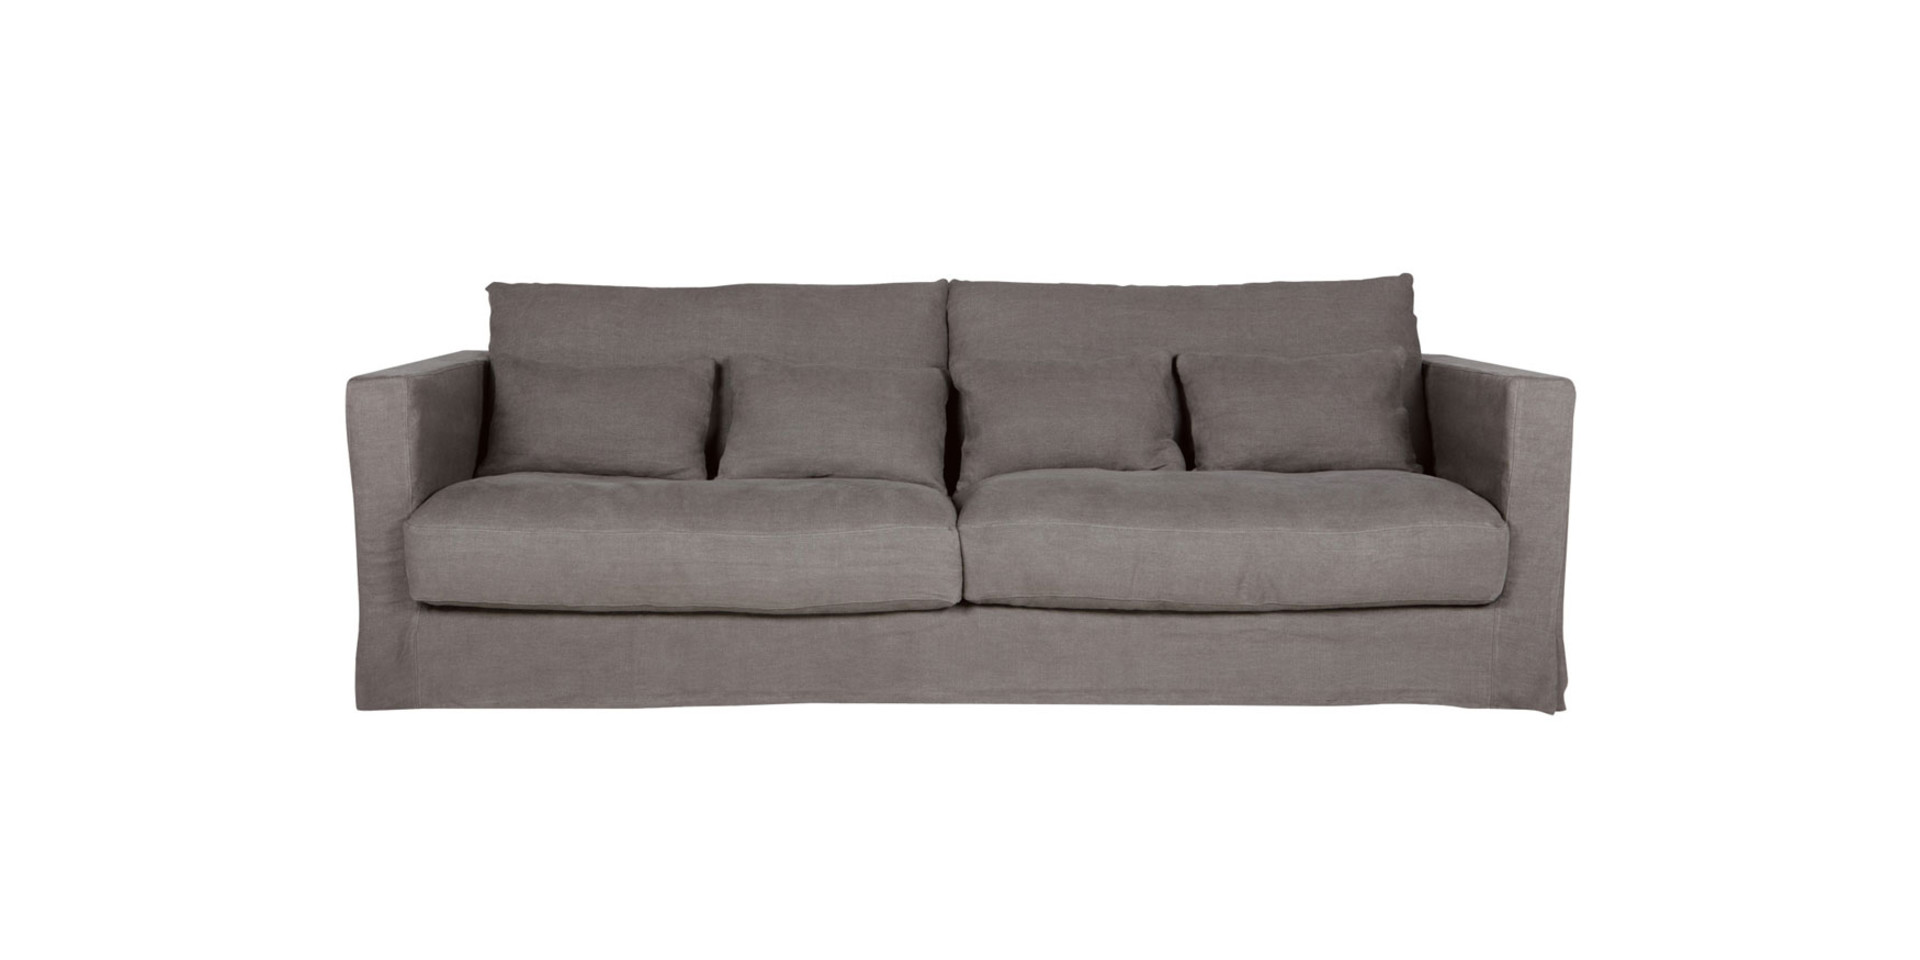 sits-heaven-canape-3seater_linen_graphite_1